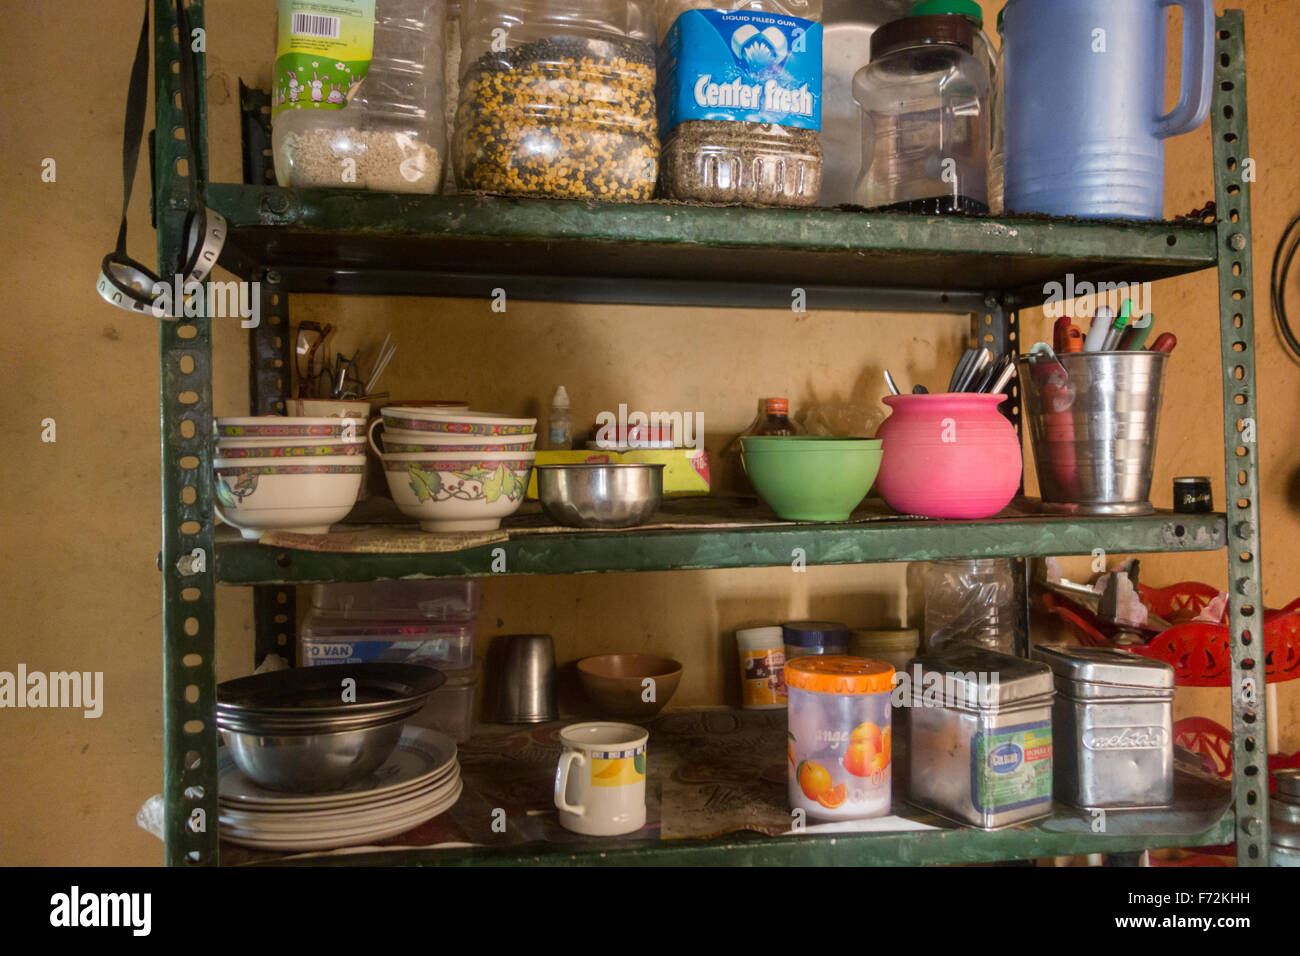 Kitchen shelves in remote Himalayan homestay accommodation - Spiti Valley, Himachal Pradesh, India - Stock Image